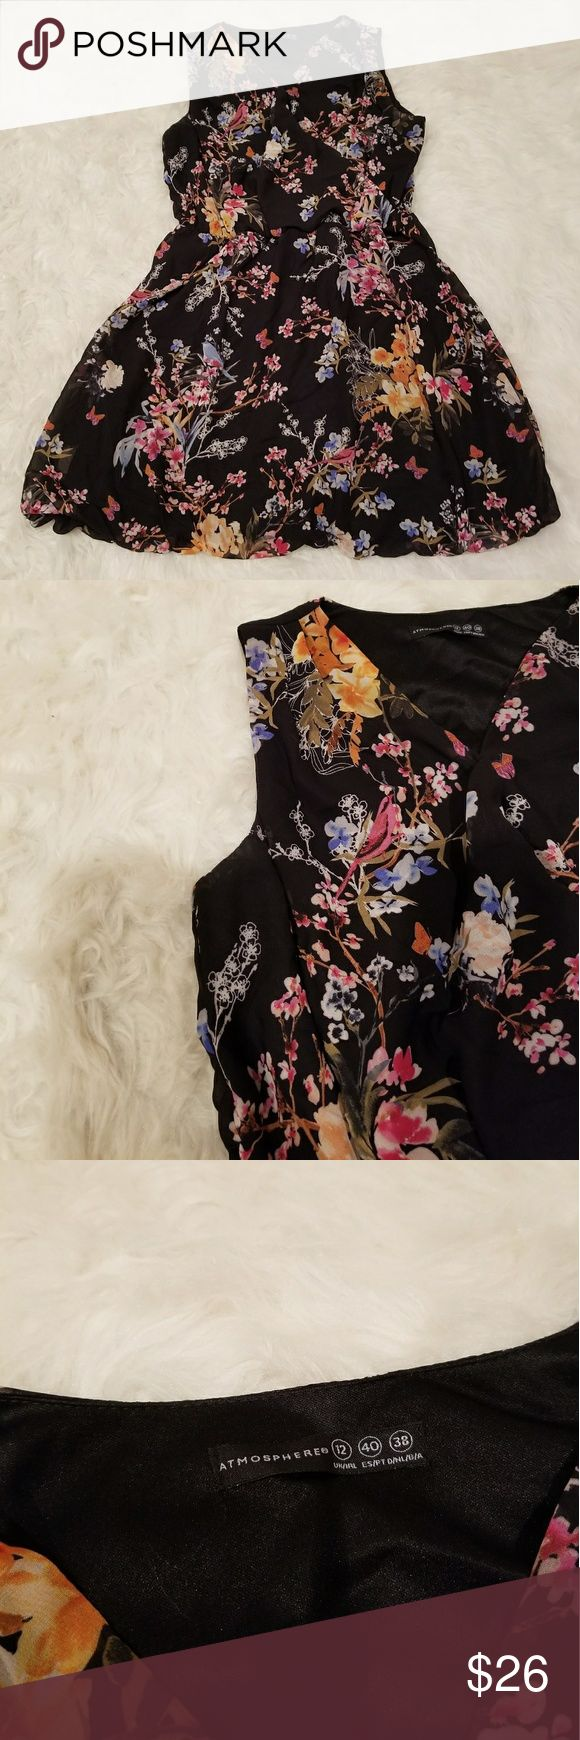 """Atmosphere floral print black summer dress size 10 Atmostphere Womens summer floral print black sleeveless dress size 12. Size 12 UK= size 10 US.  Pre-owned, in excellent condition.  Pit to pit: 15.5""""  Waist: 14-17+"""" (flexible waistband)  Length: 34""""  (Please see picture for description and item features) Atmosphere Dresses Mini"""